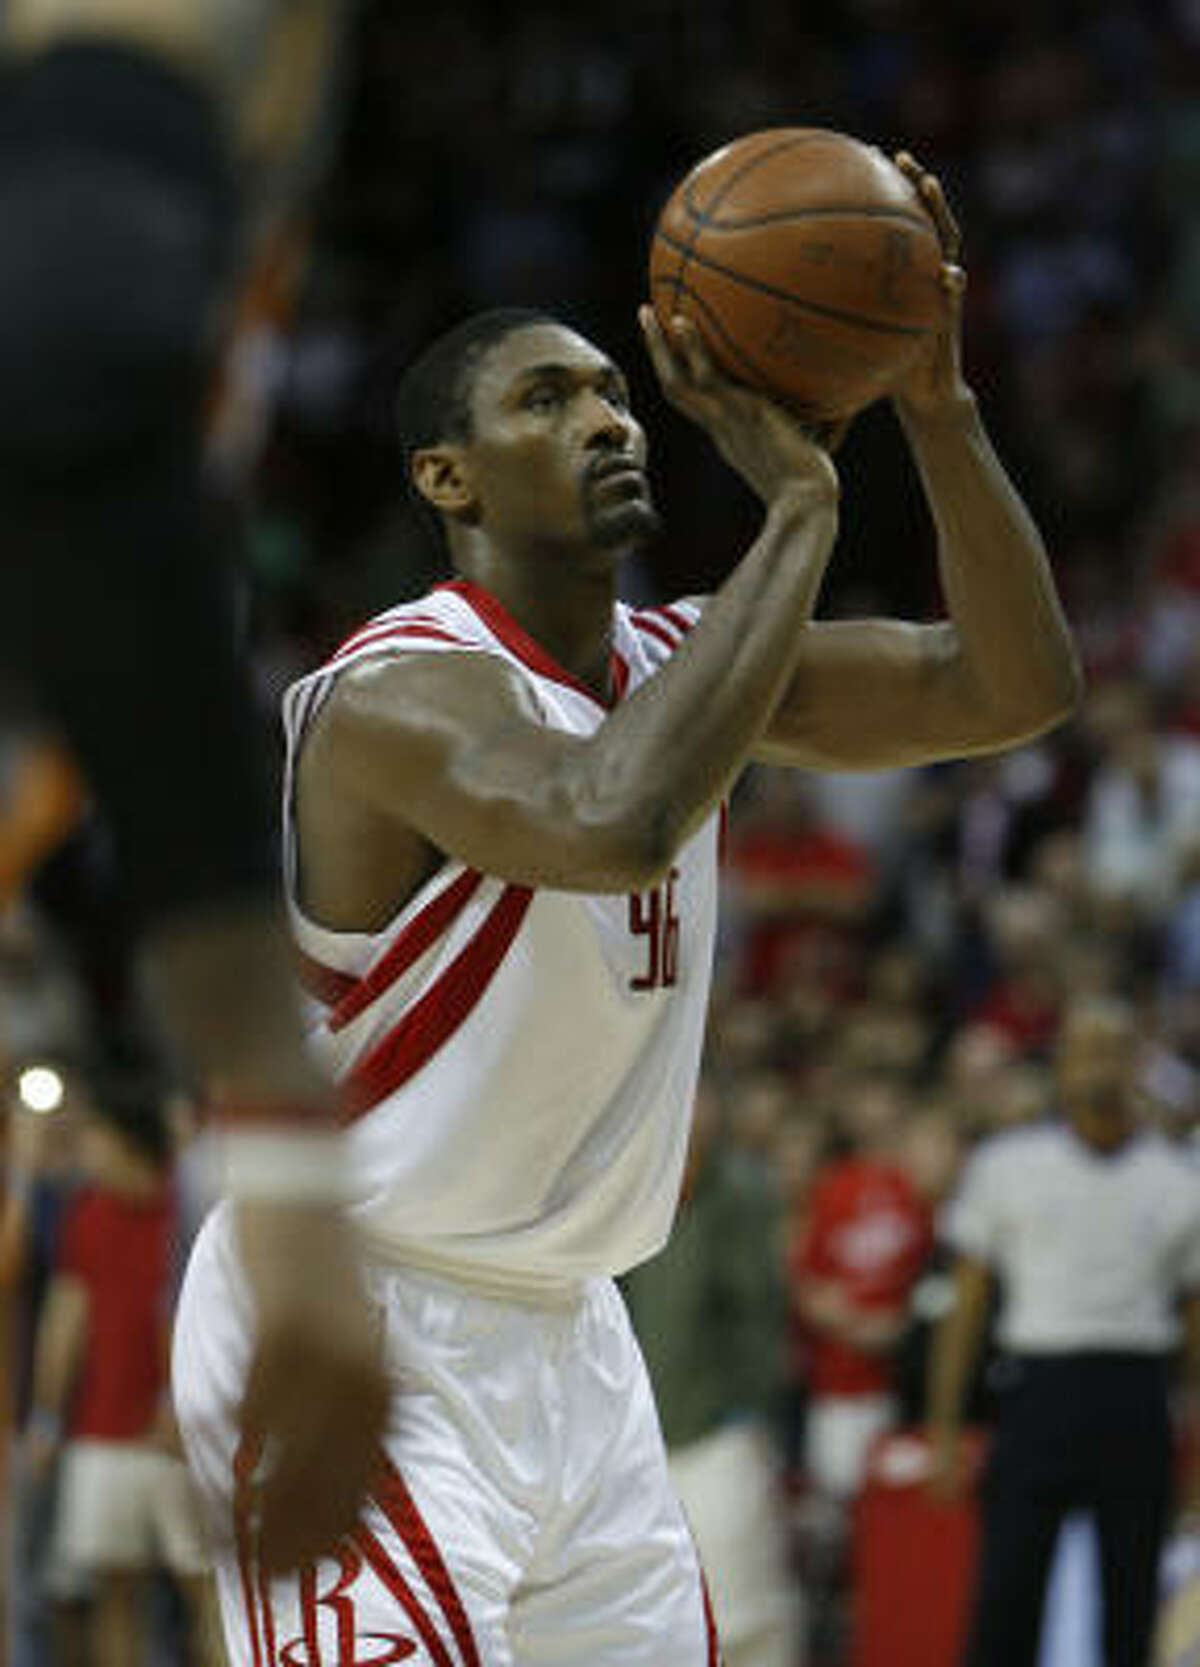 Ron Artest sinks his second of two free throws to seal the game and give the Rockets a four-point lead with seven seconds left.